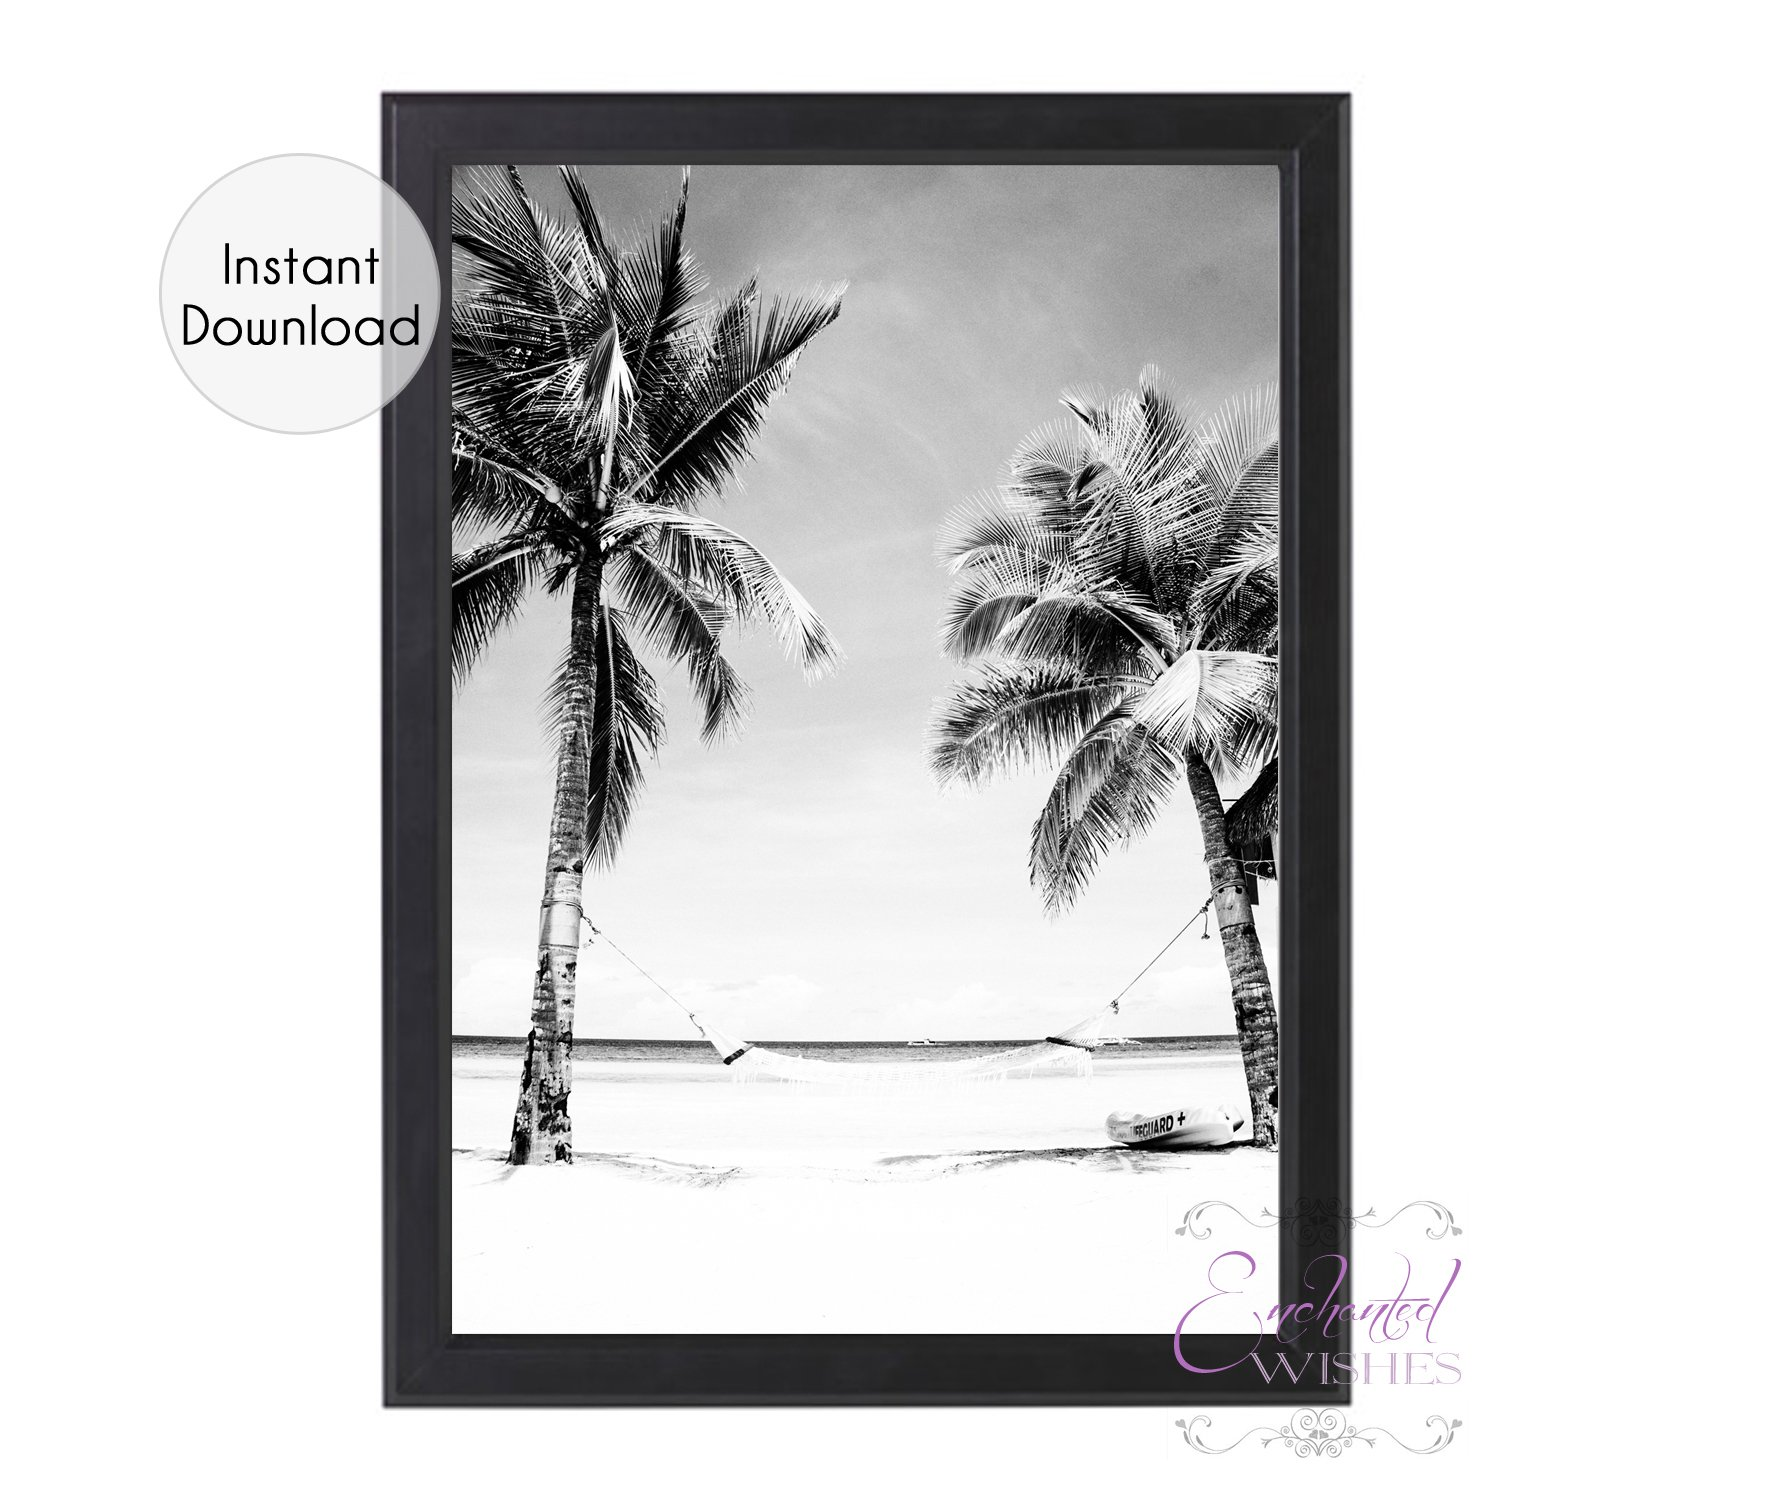 graphic about Palm Tree Printable titled Monochrome Palm Tree Seashore Print Printable - Immediate Down load